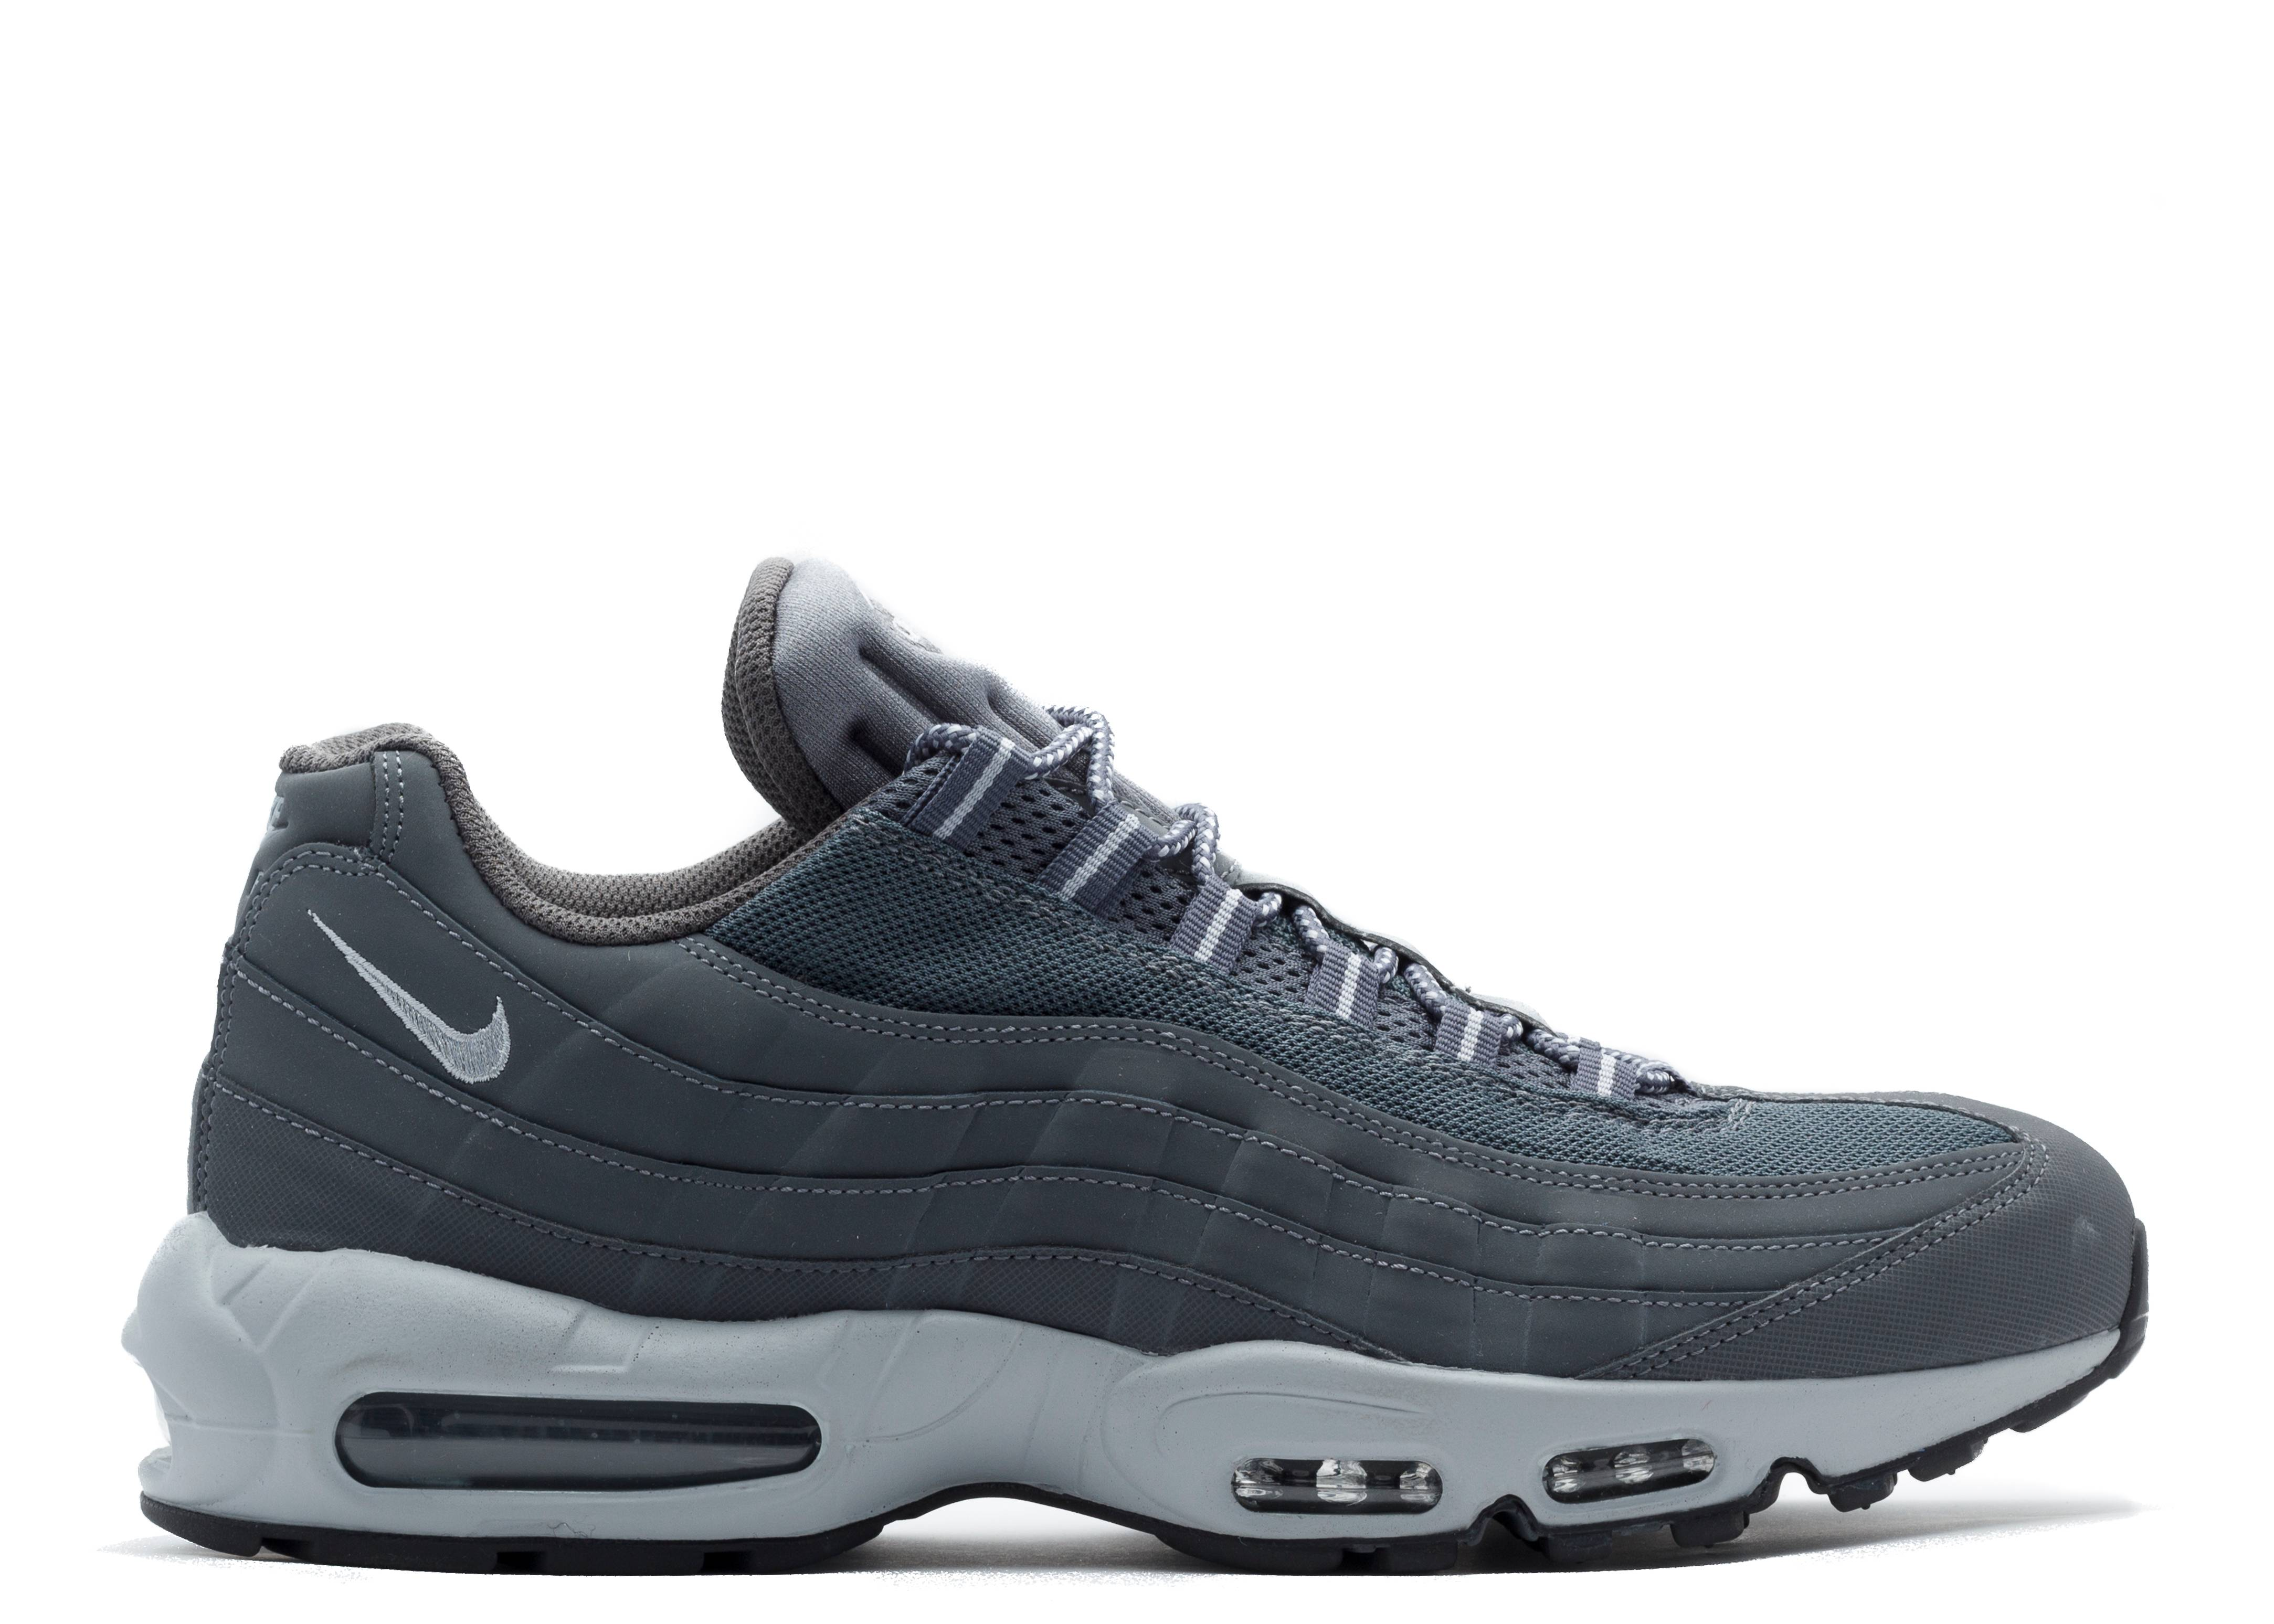 nike air max 95 white wolf grey. Black Bedroom Furniture Sets. Home Design Ideas